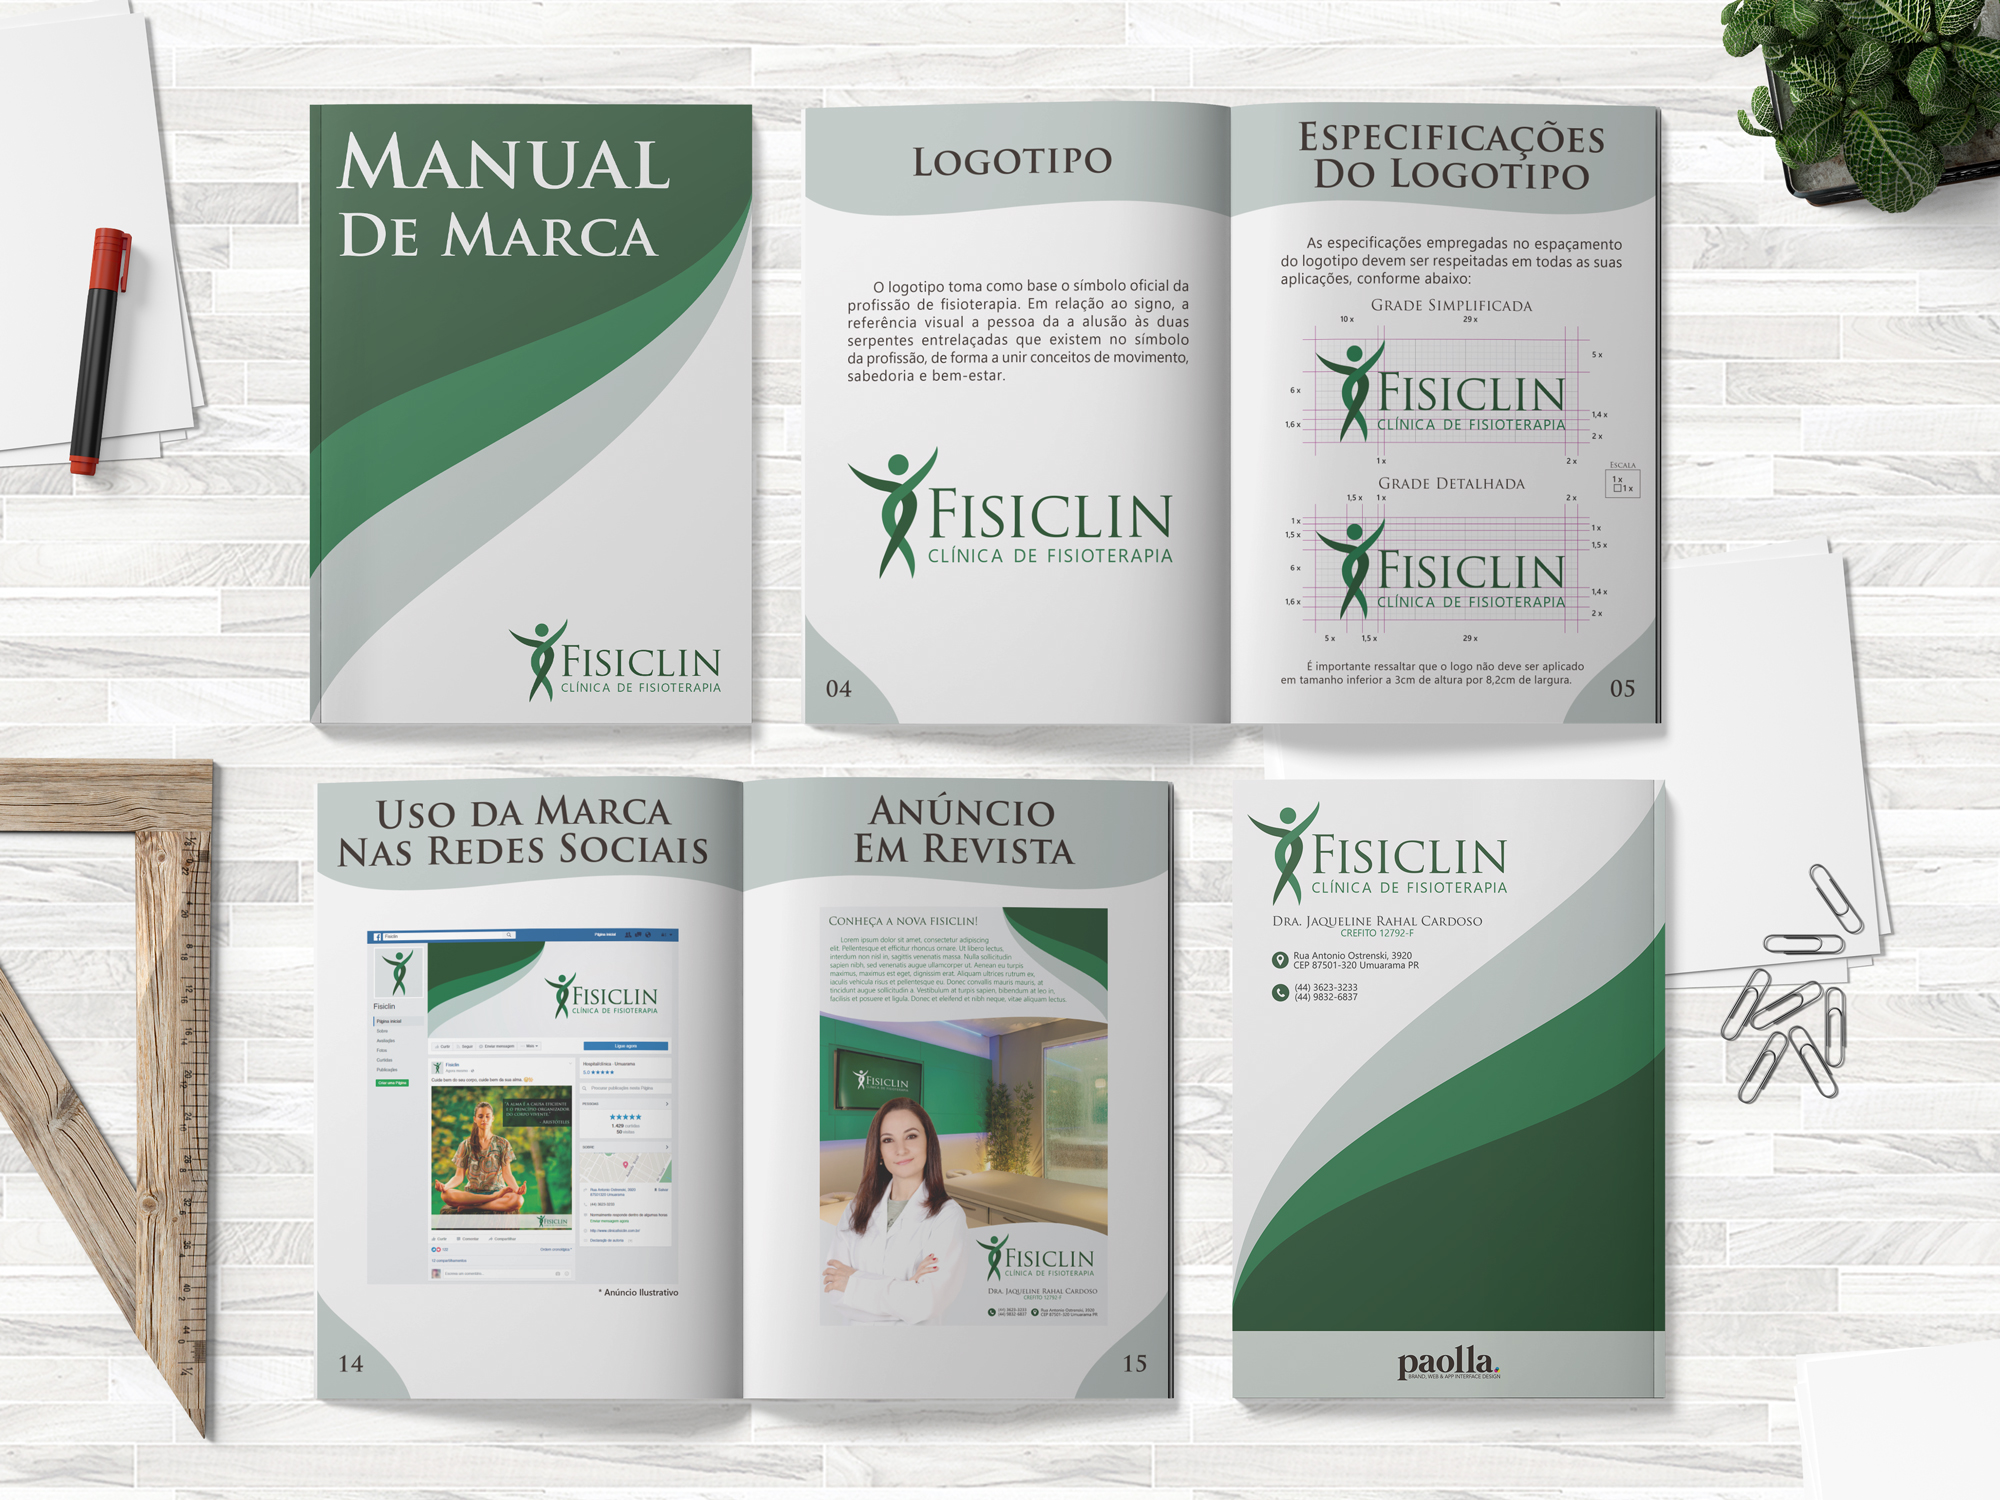 Manual de Marca: Fisiclin